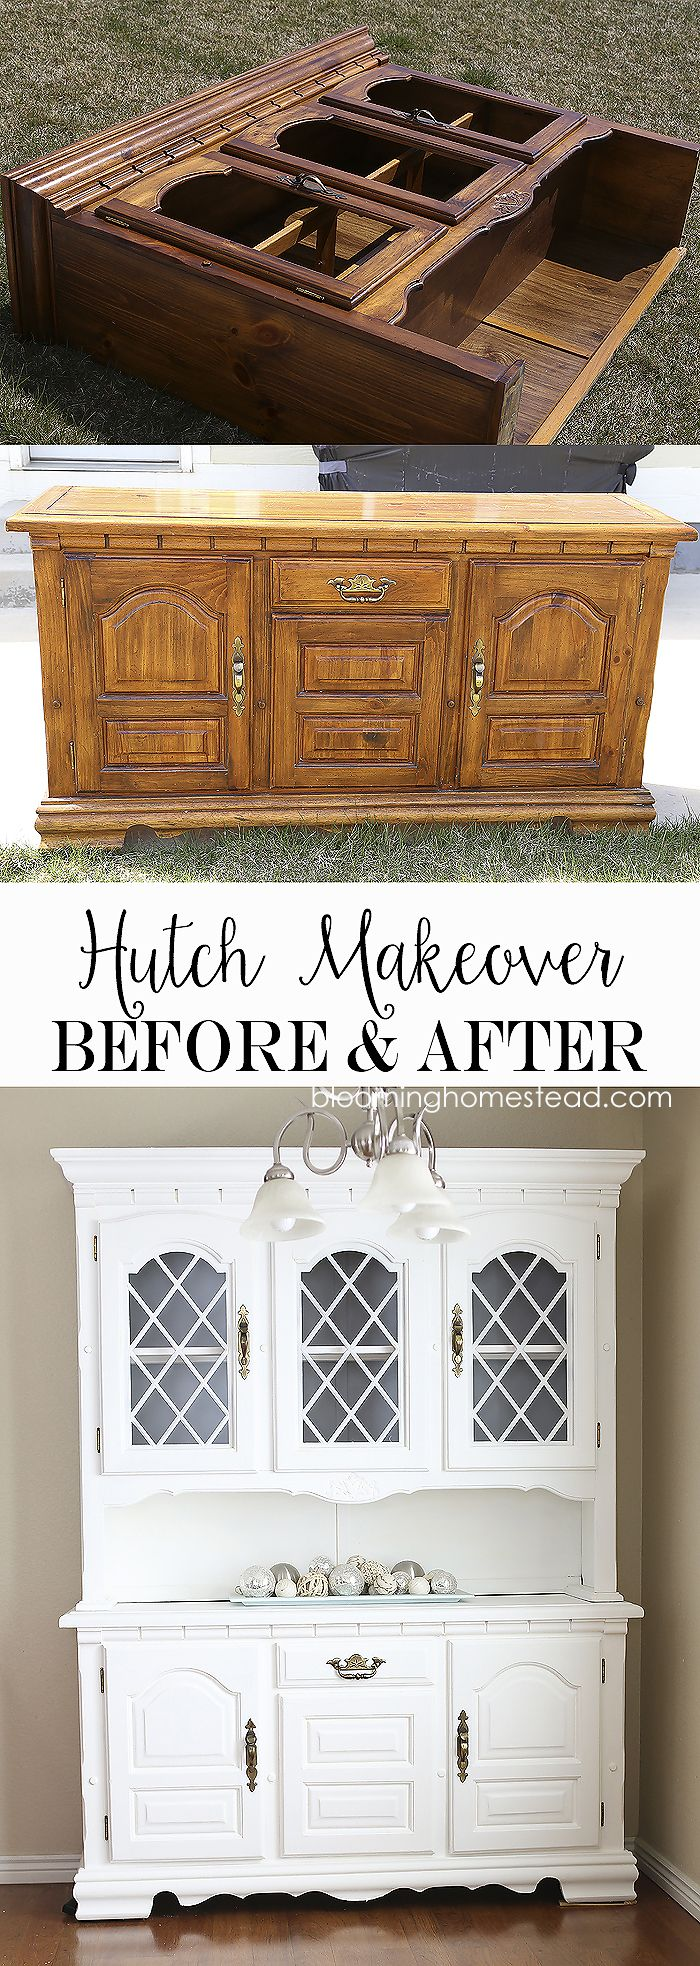 China Hutch Makeover From Start To Finish Using Americana Decor Chalky Decoartprojects